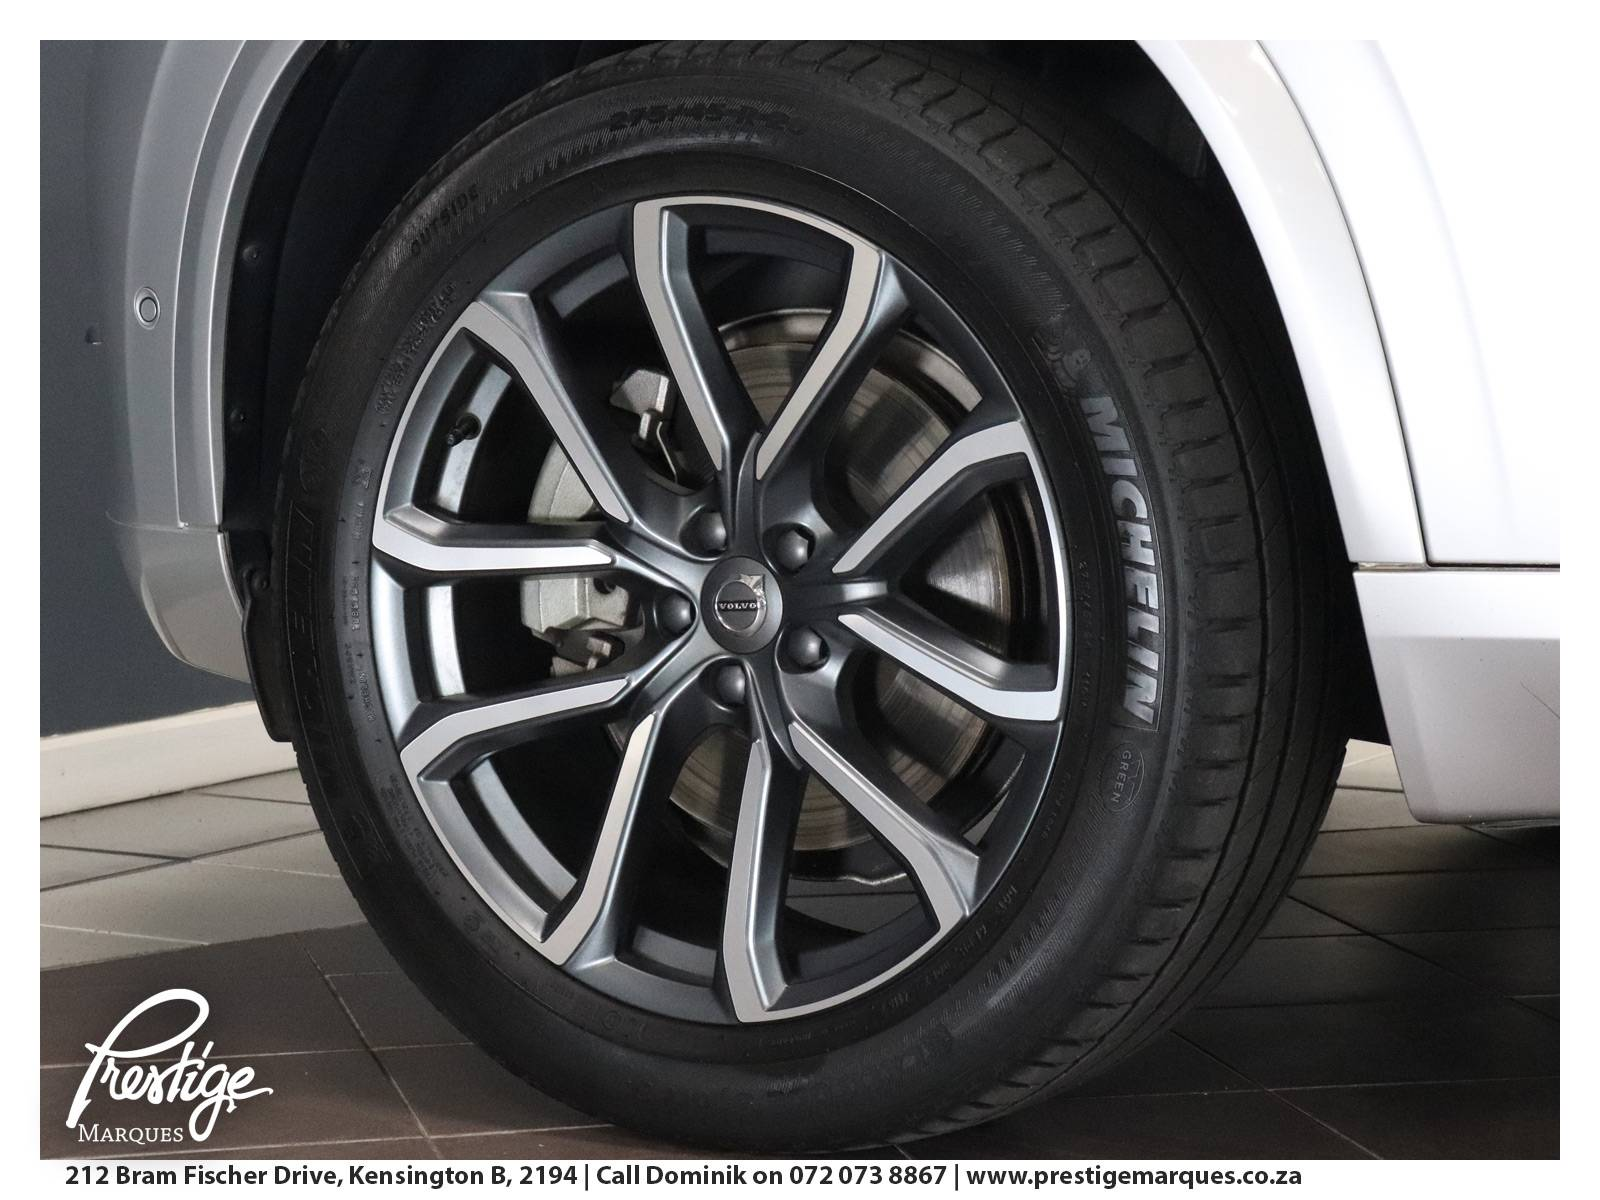 Volvo-XC90-D5-Inscription-Prestige-Marques-Randburg-Sandton-8